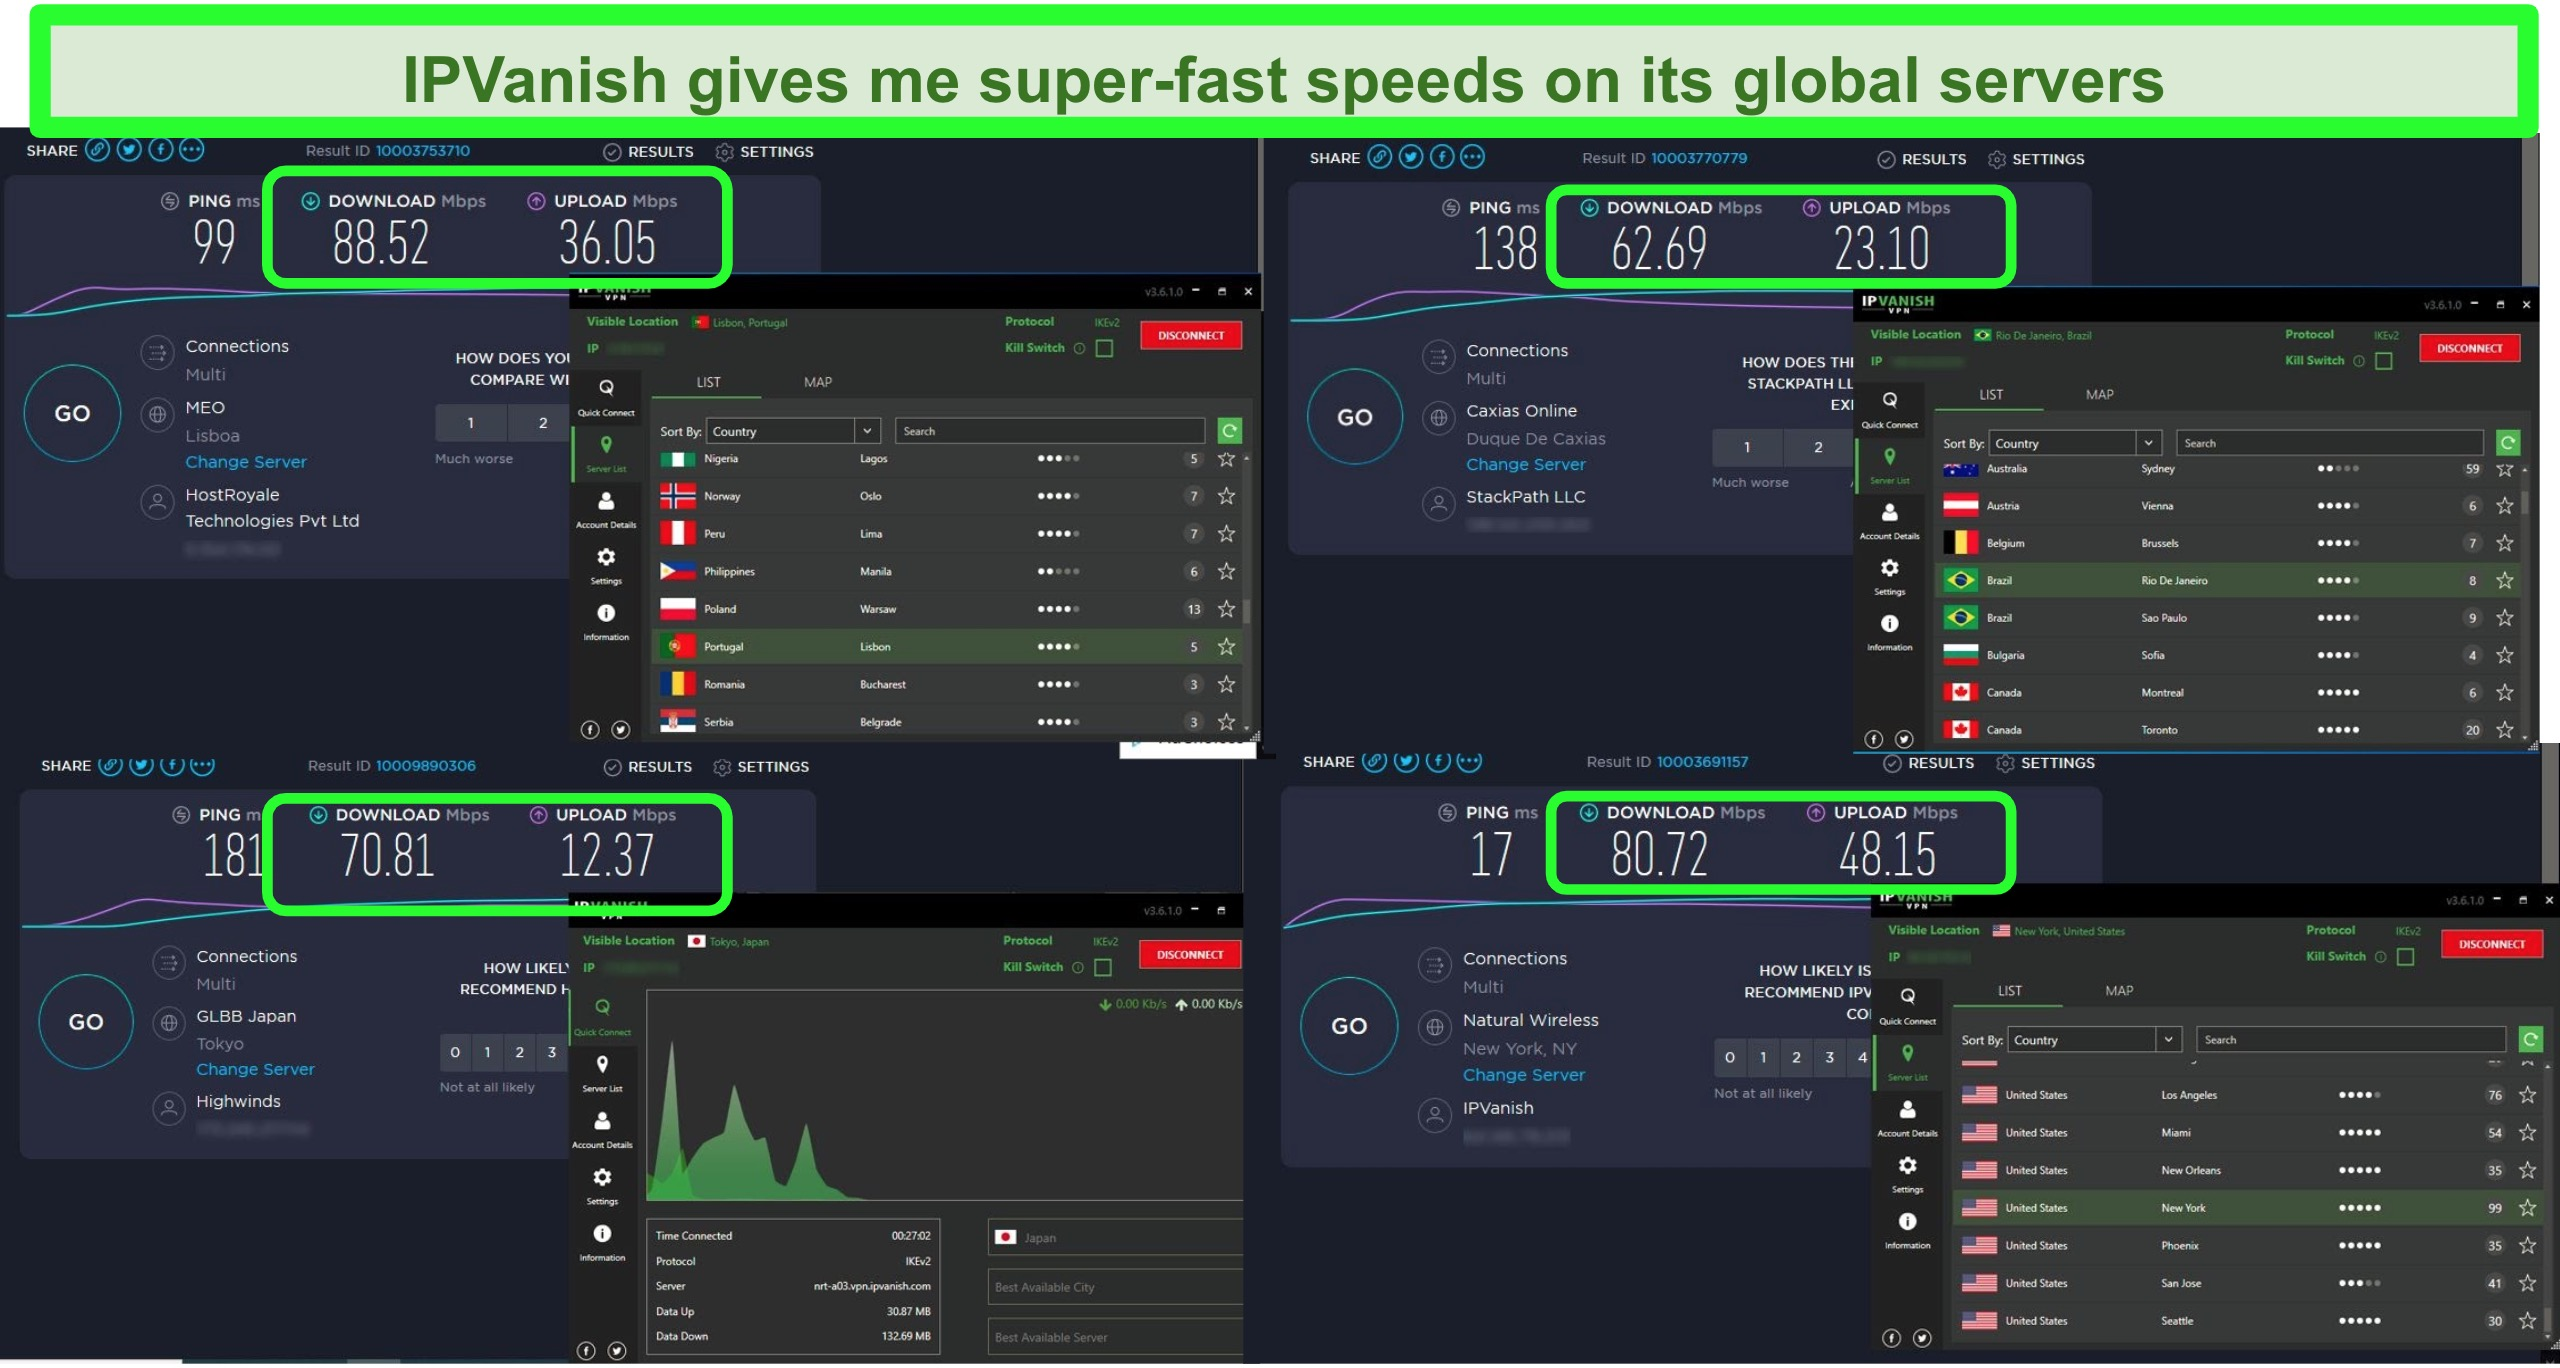 Screenshot of 4 speed tests while connected to various IPVanish servers